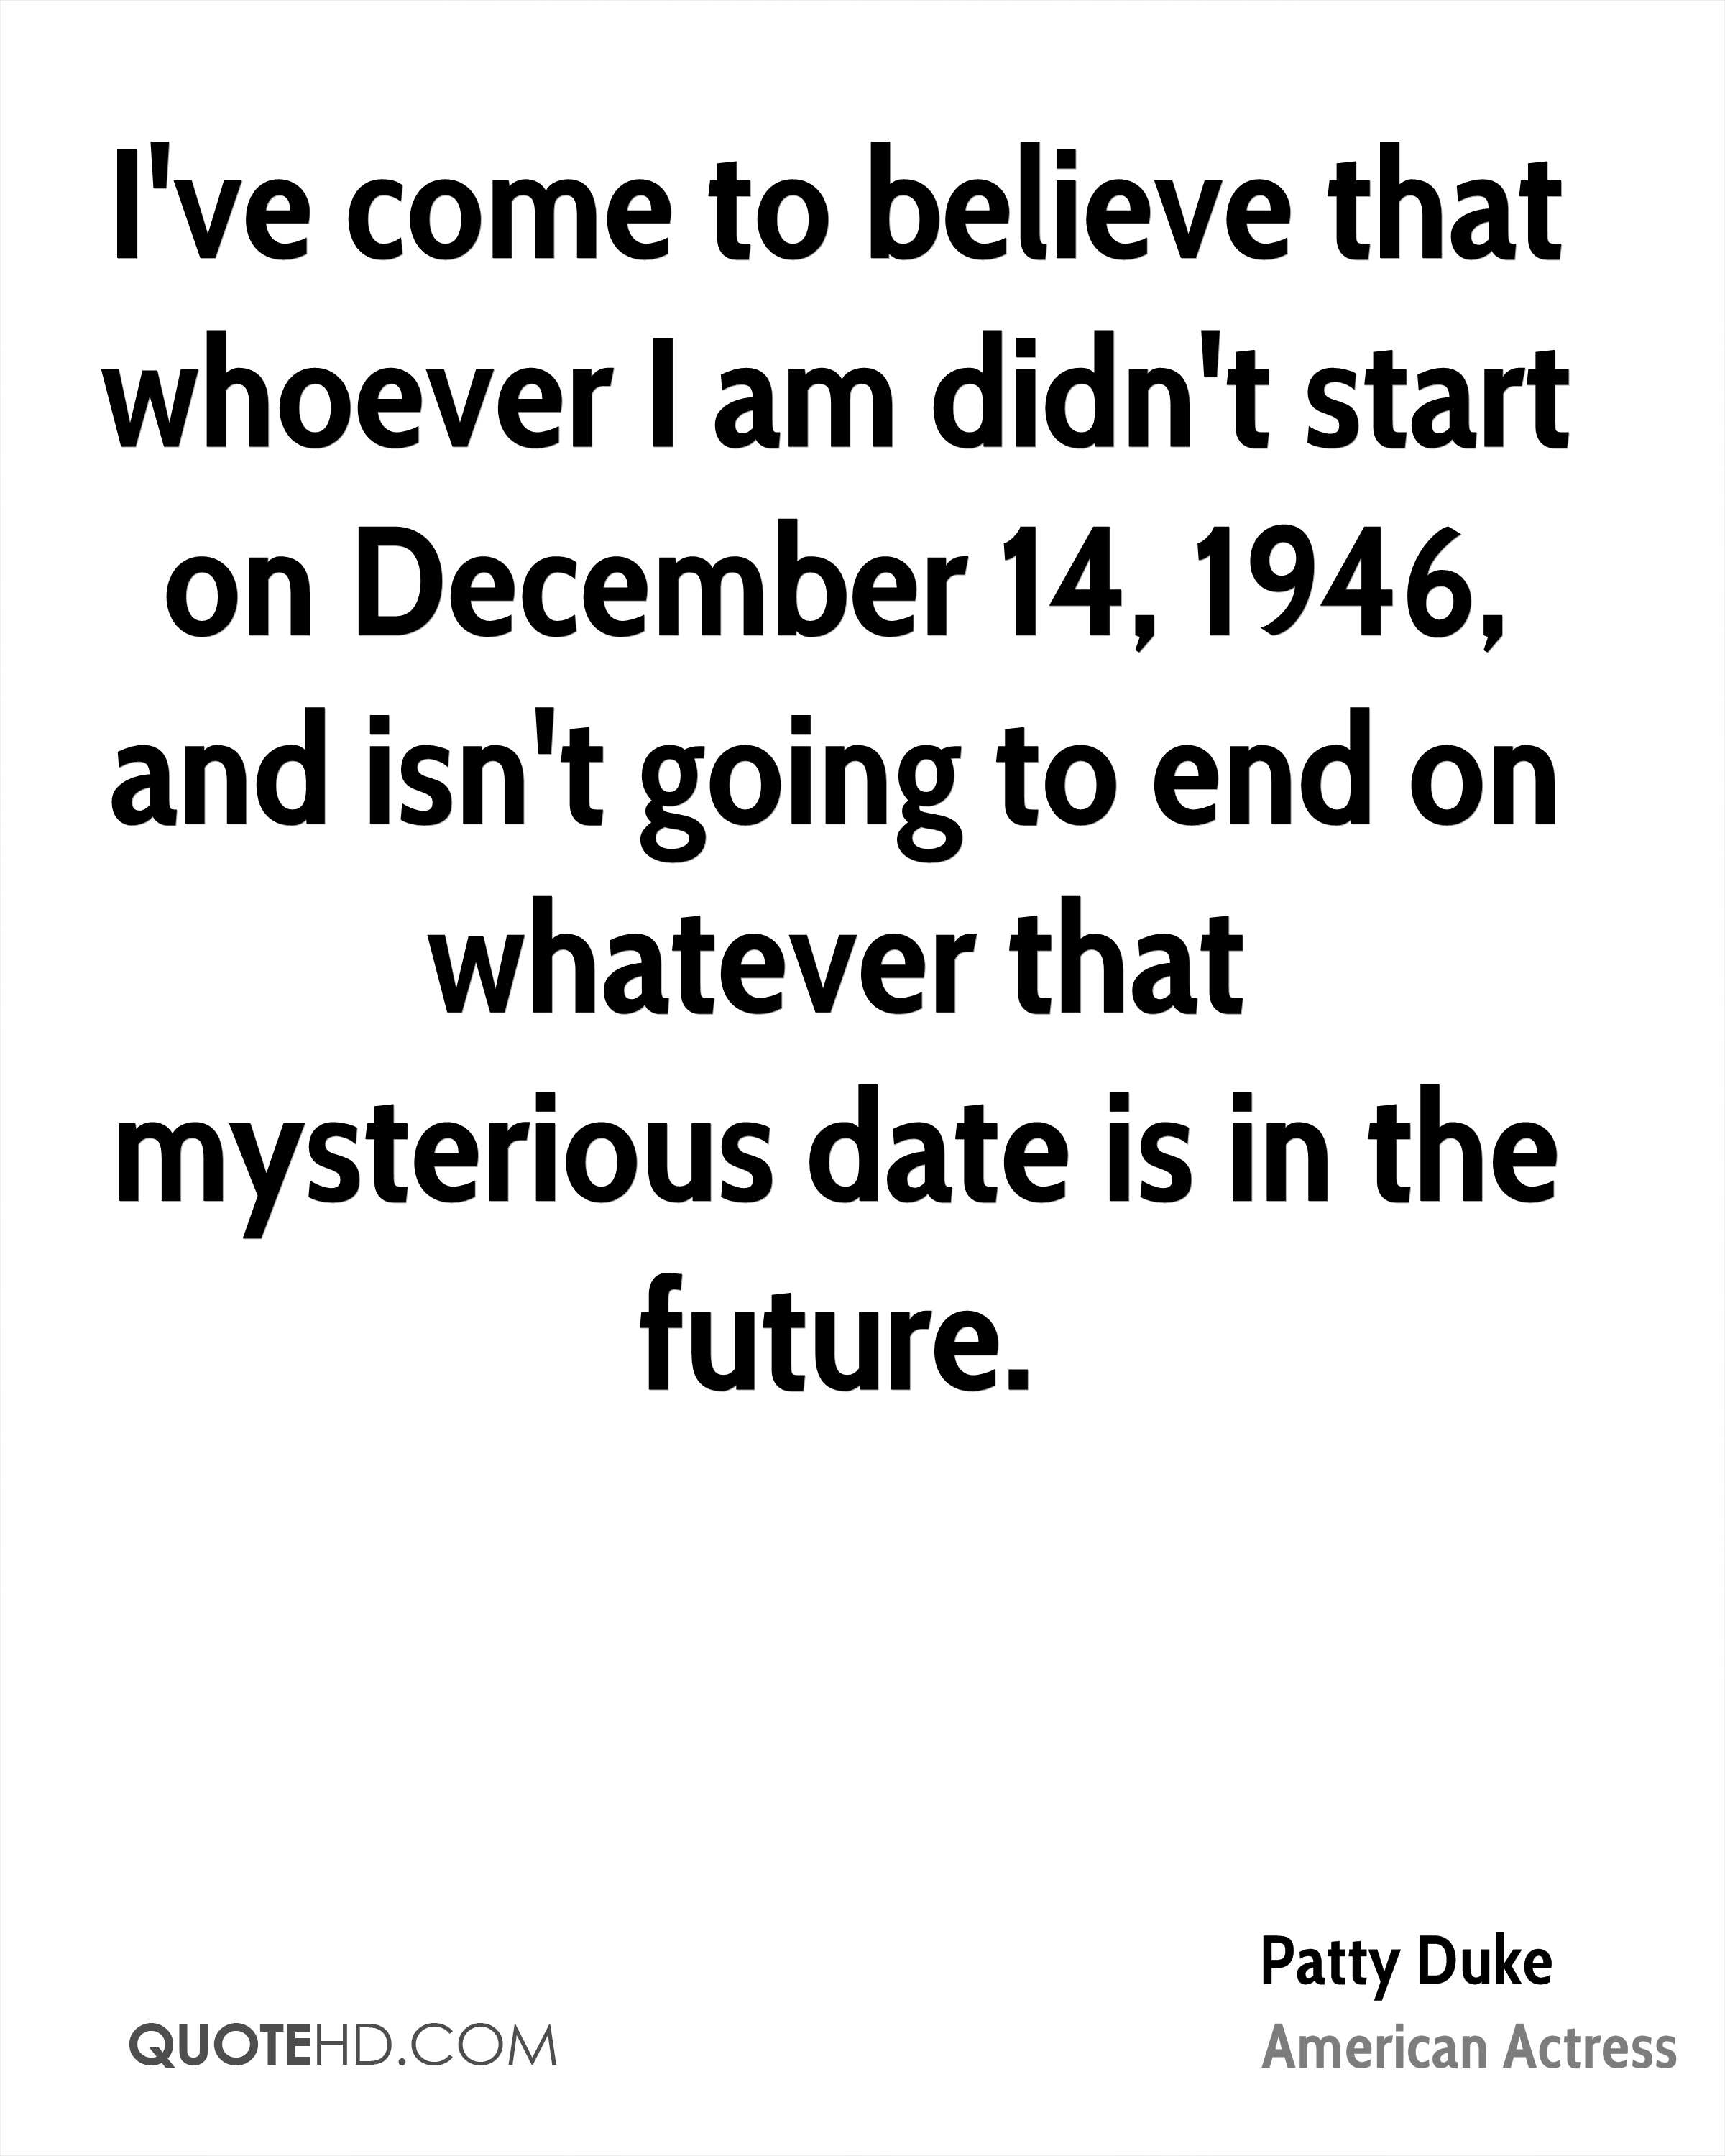 I've come to believe that whoever I am didn't start on December 14, 1946, and isn't going to end on whatever that mysterious date is in the future.